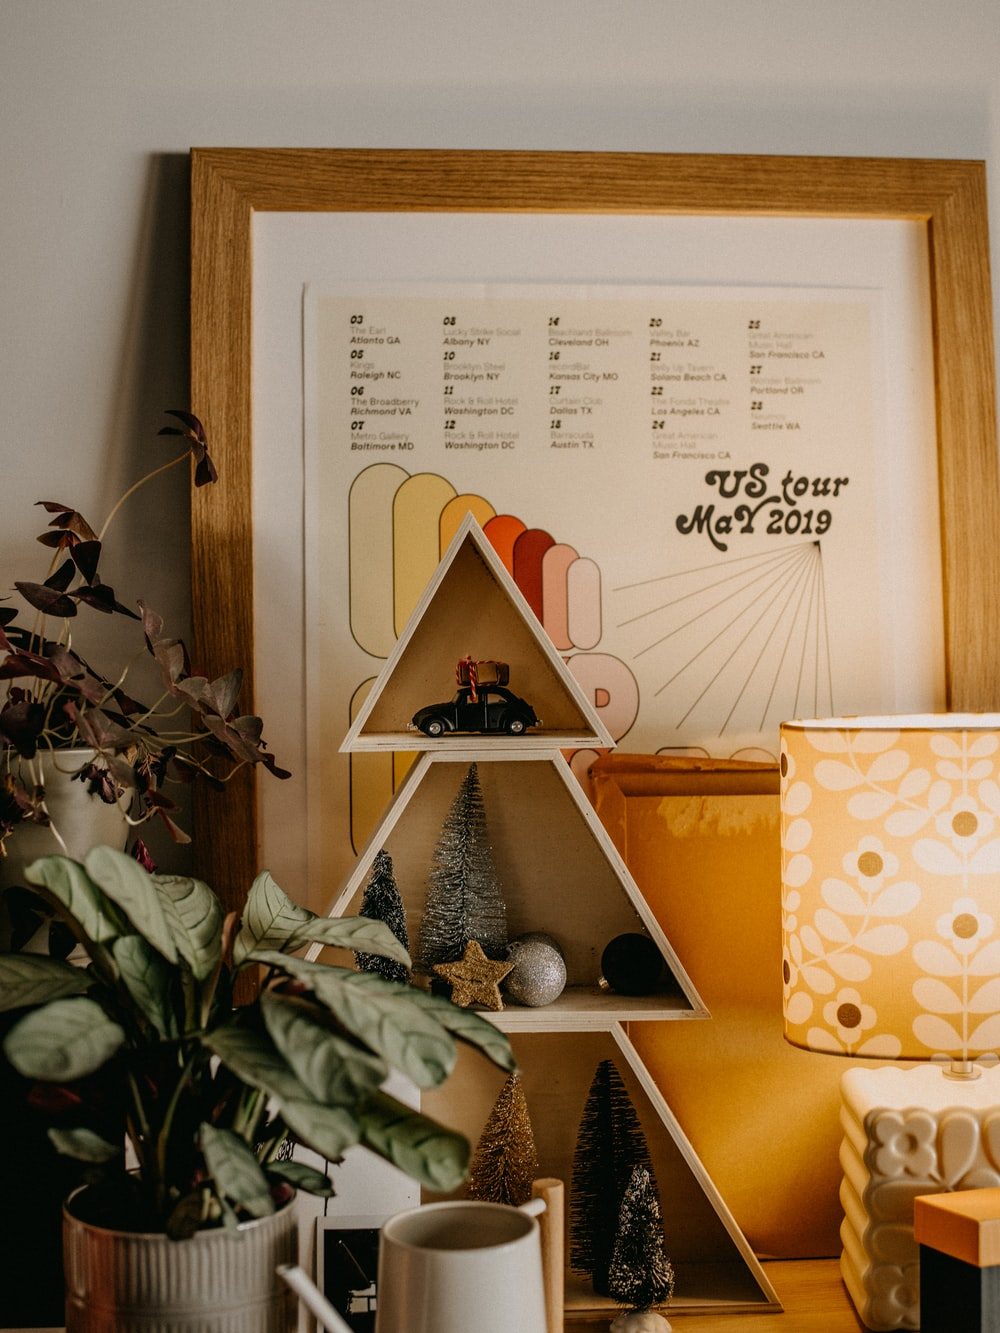 brown wooden frame with white and brown polka dot paper